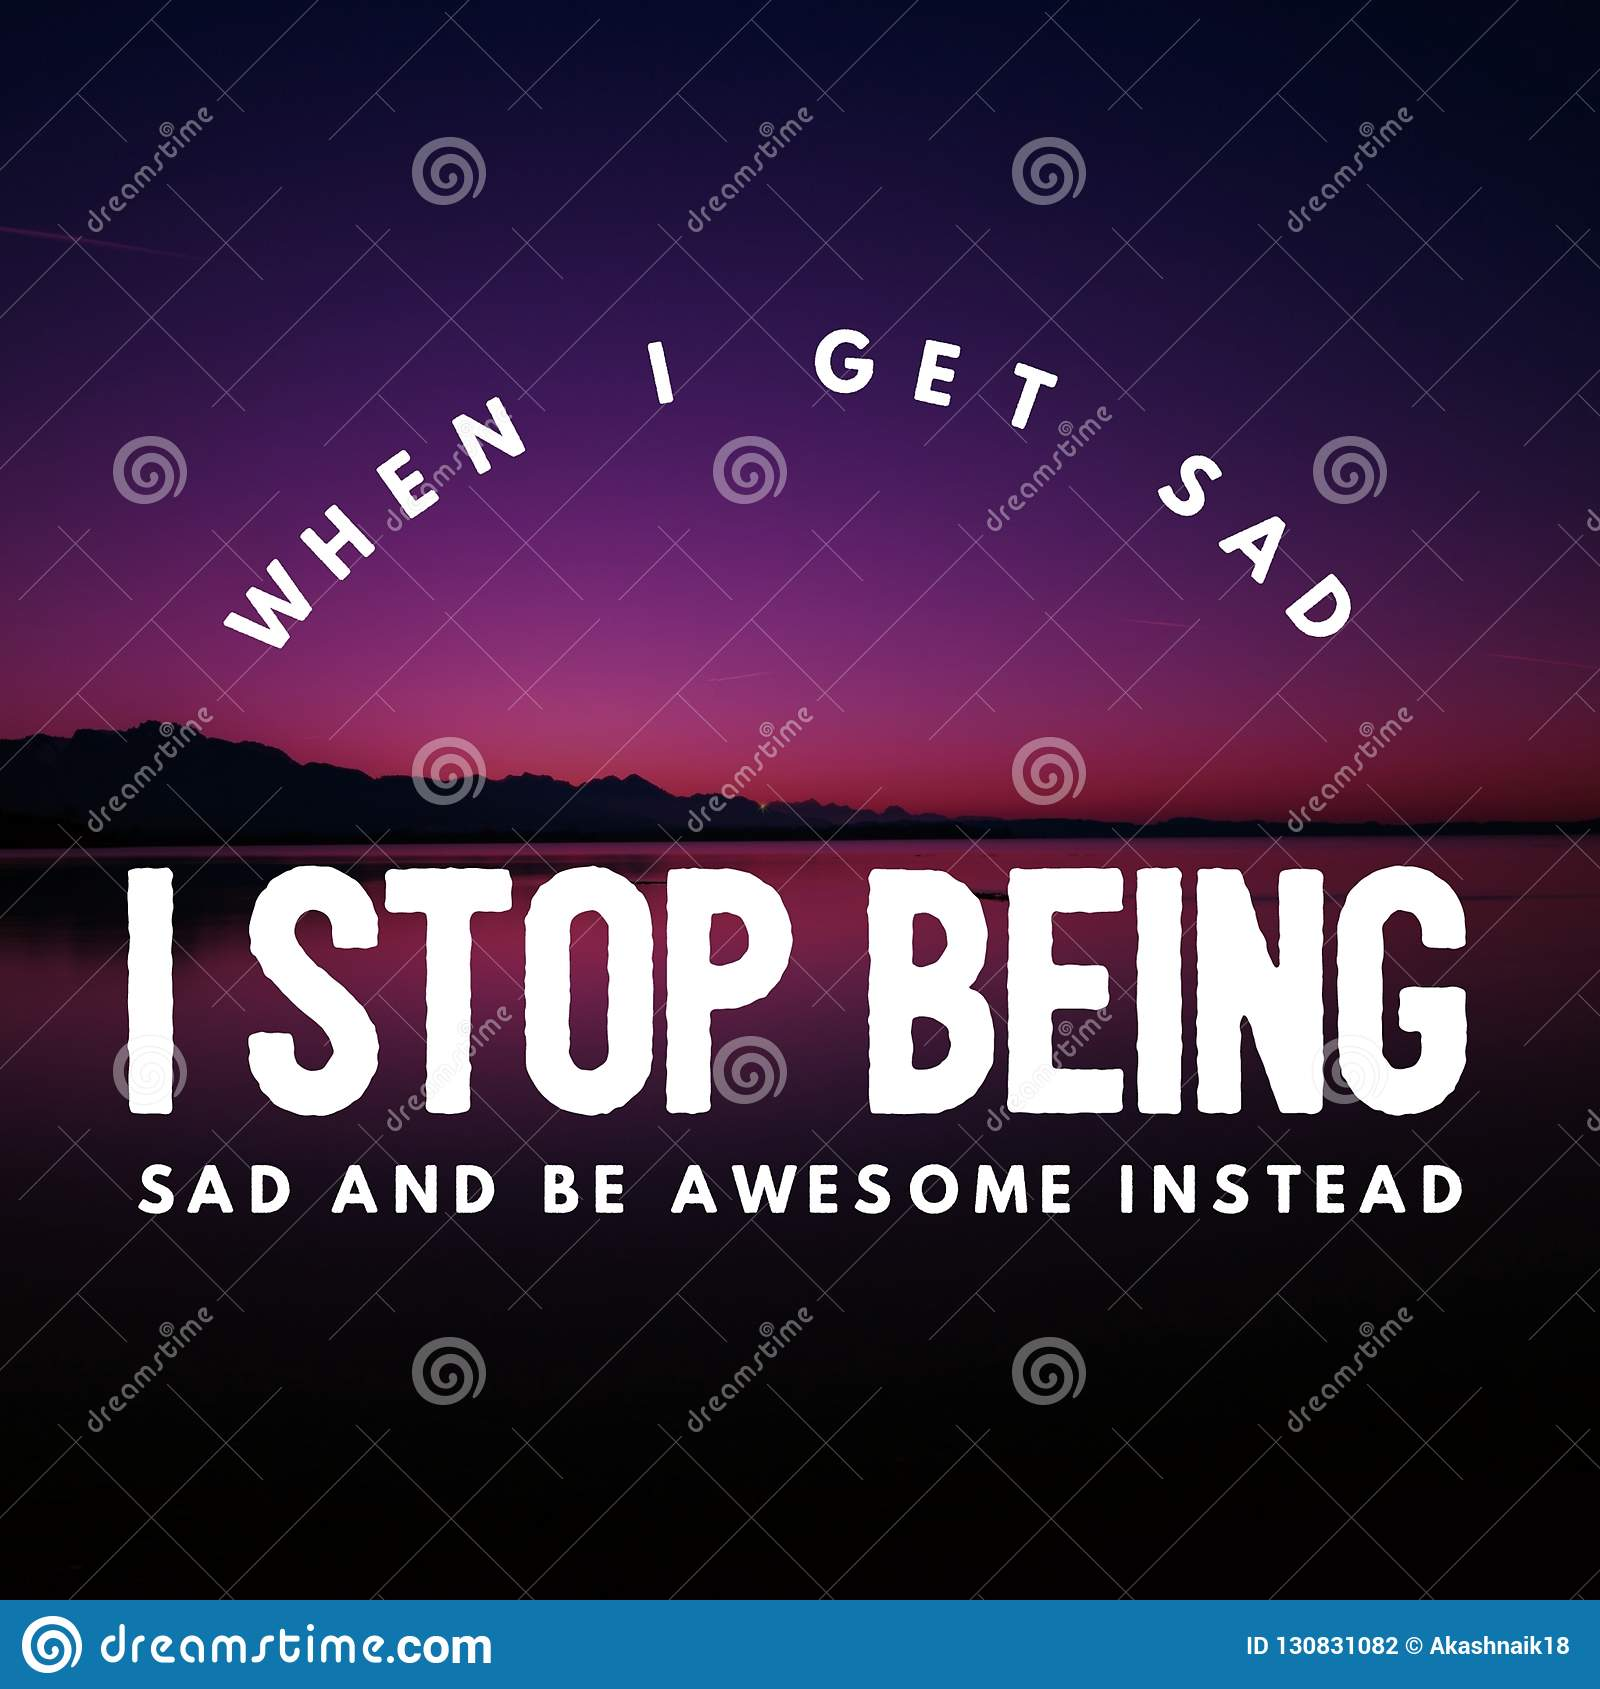 Stop being sad and be awesome